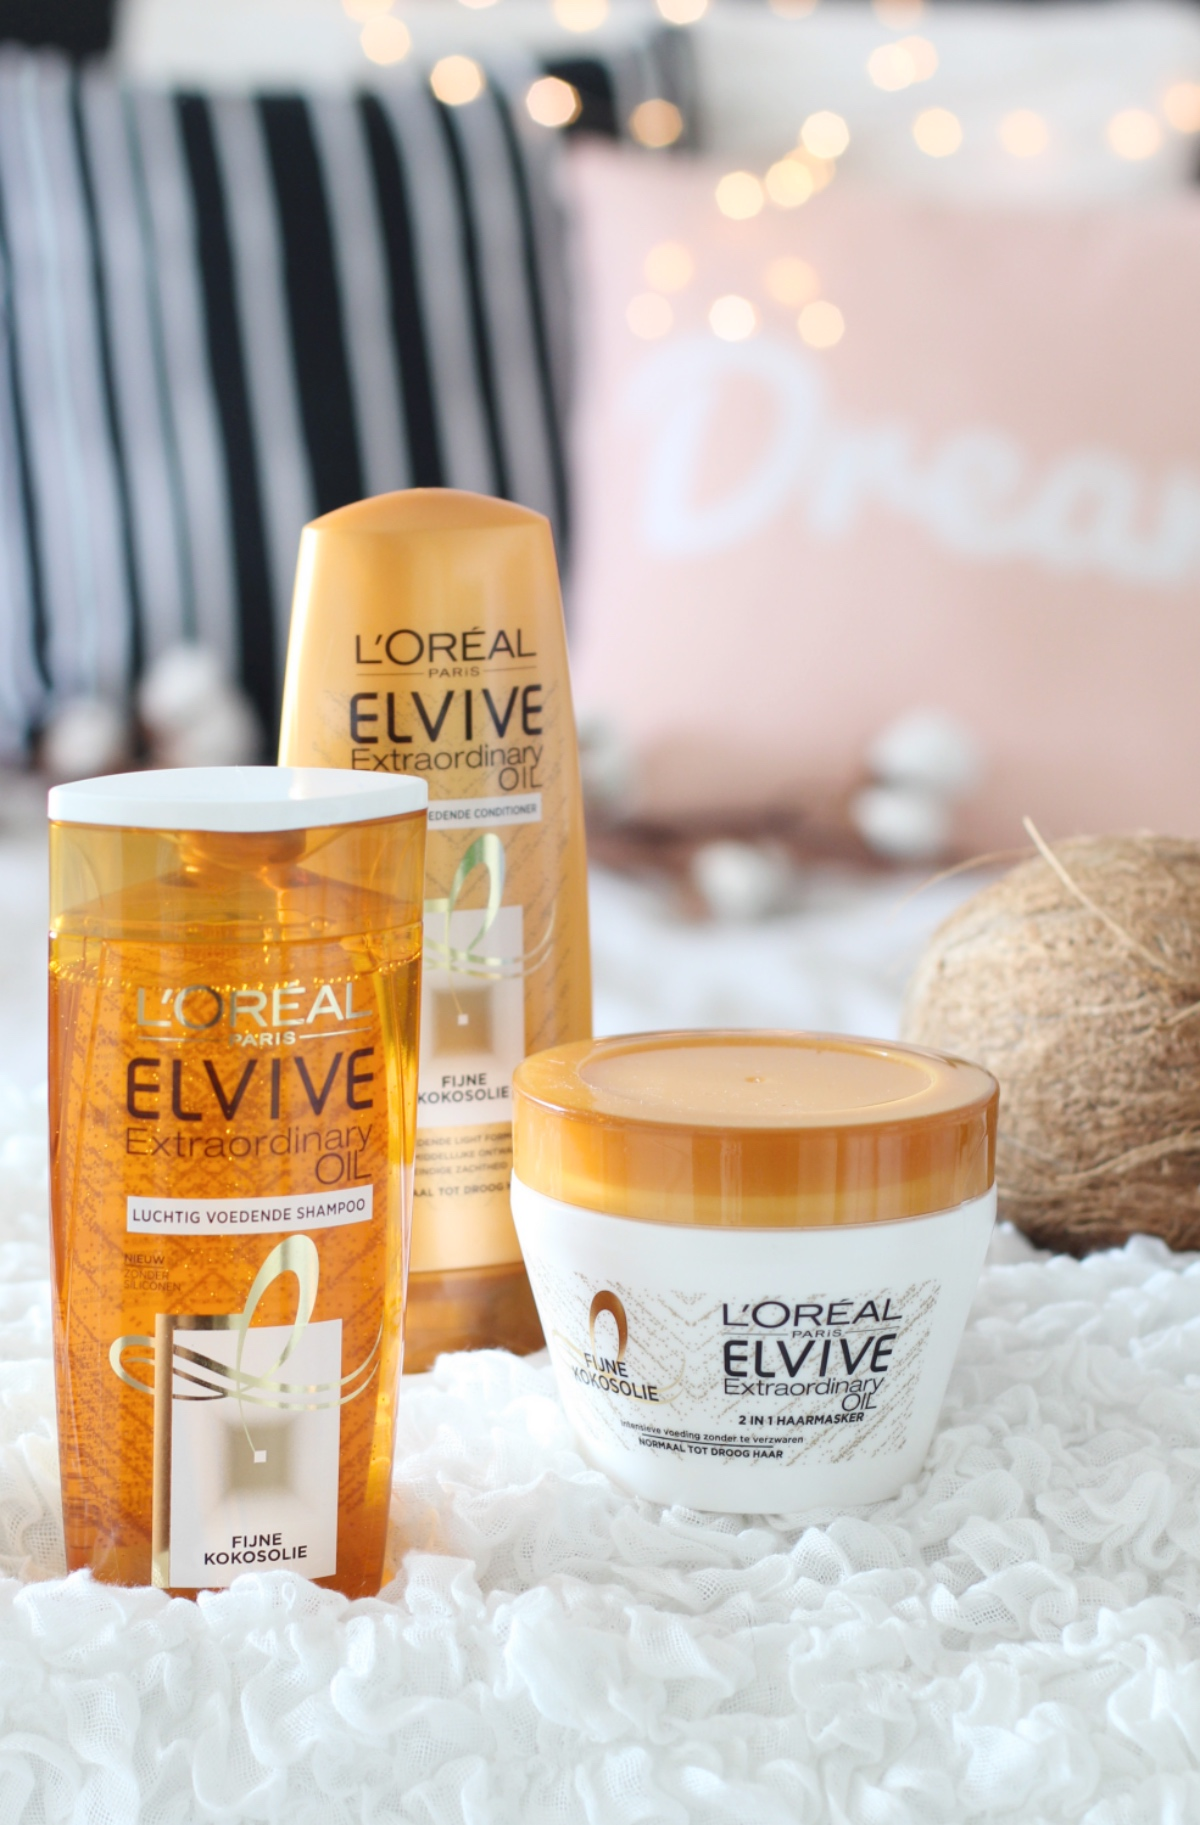 L'Oréal elvive extraordinary oil fijne kokosolie